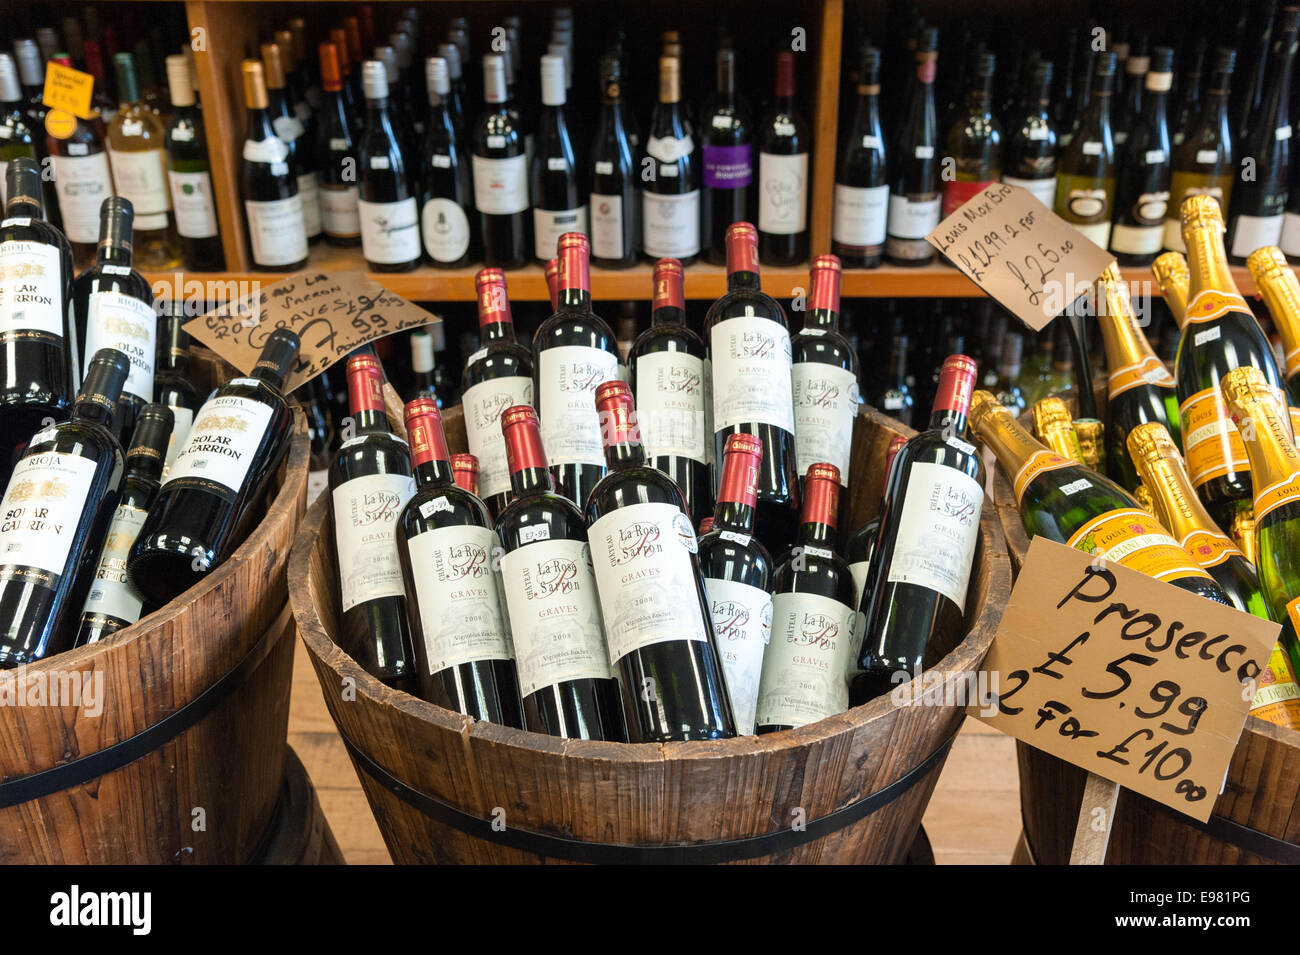 Wine bottles in local independent off licence, London, England, UK - Stock Image